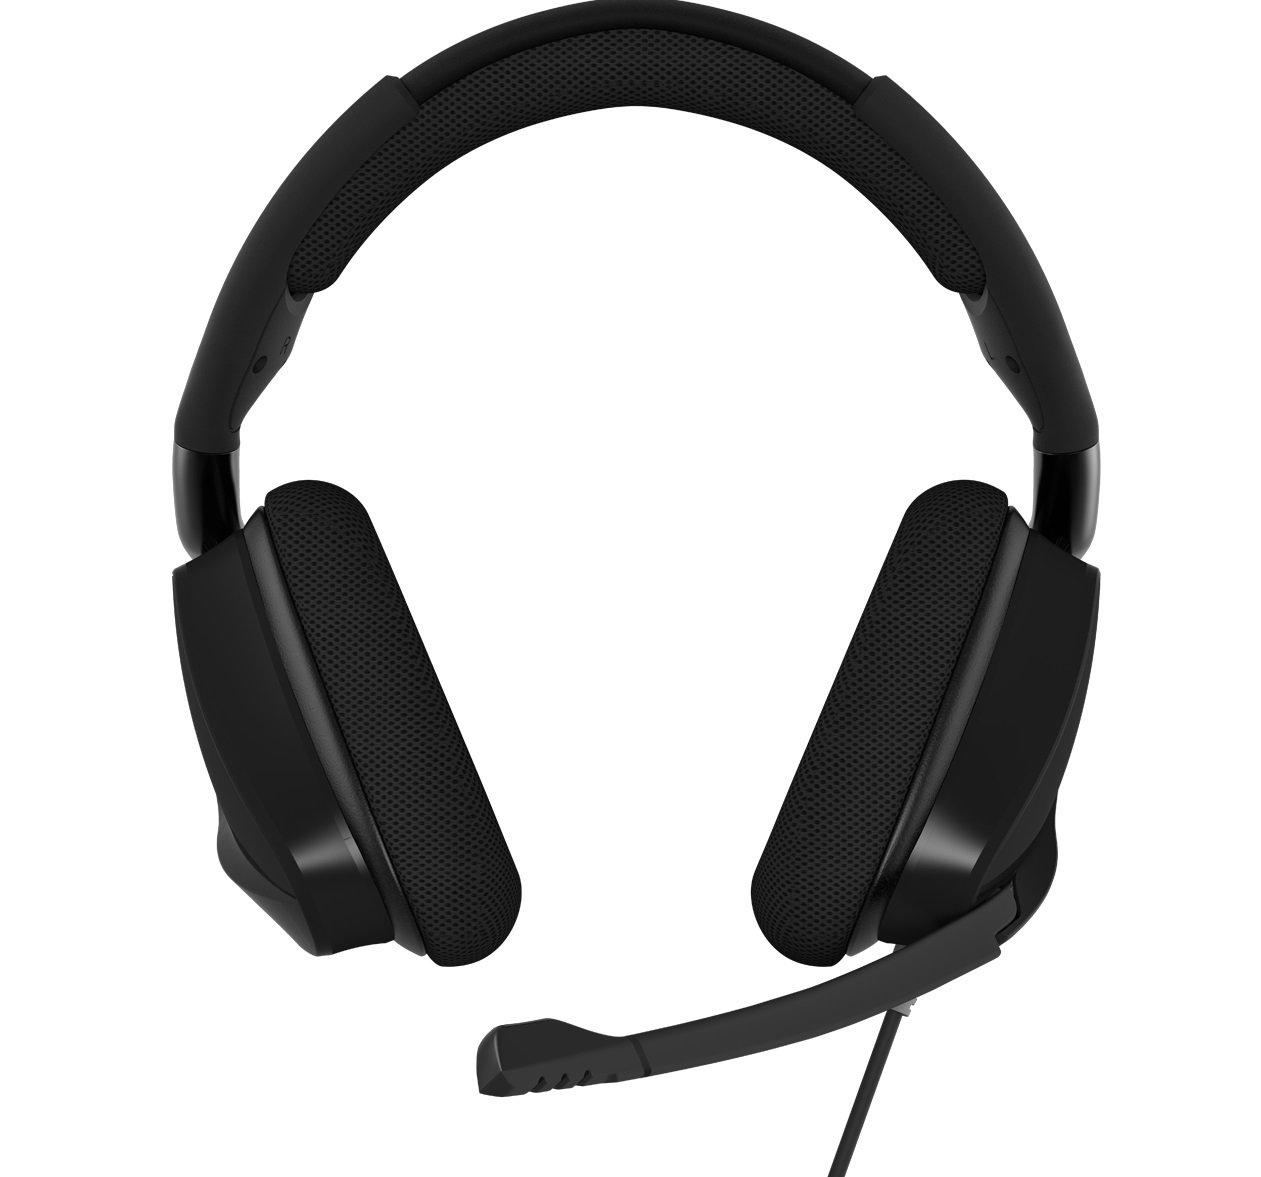 Corsair Void Elite Surround Gaming Headset (Carbon) for PC image